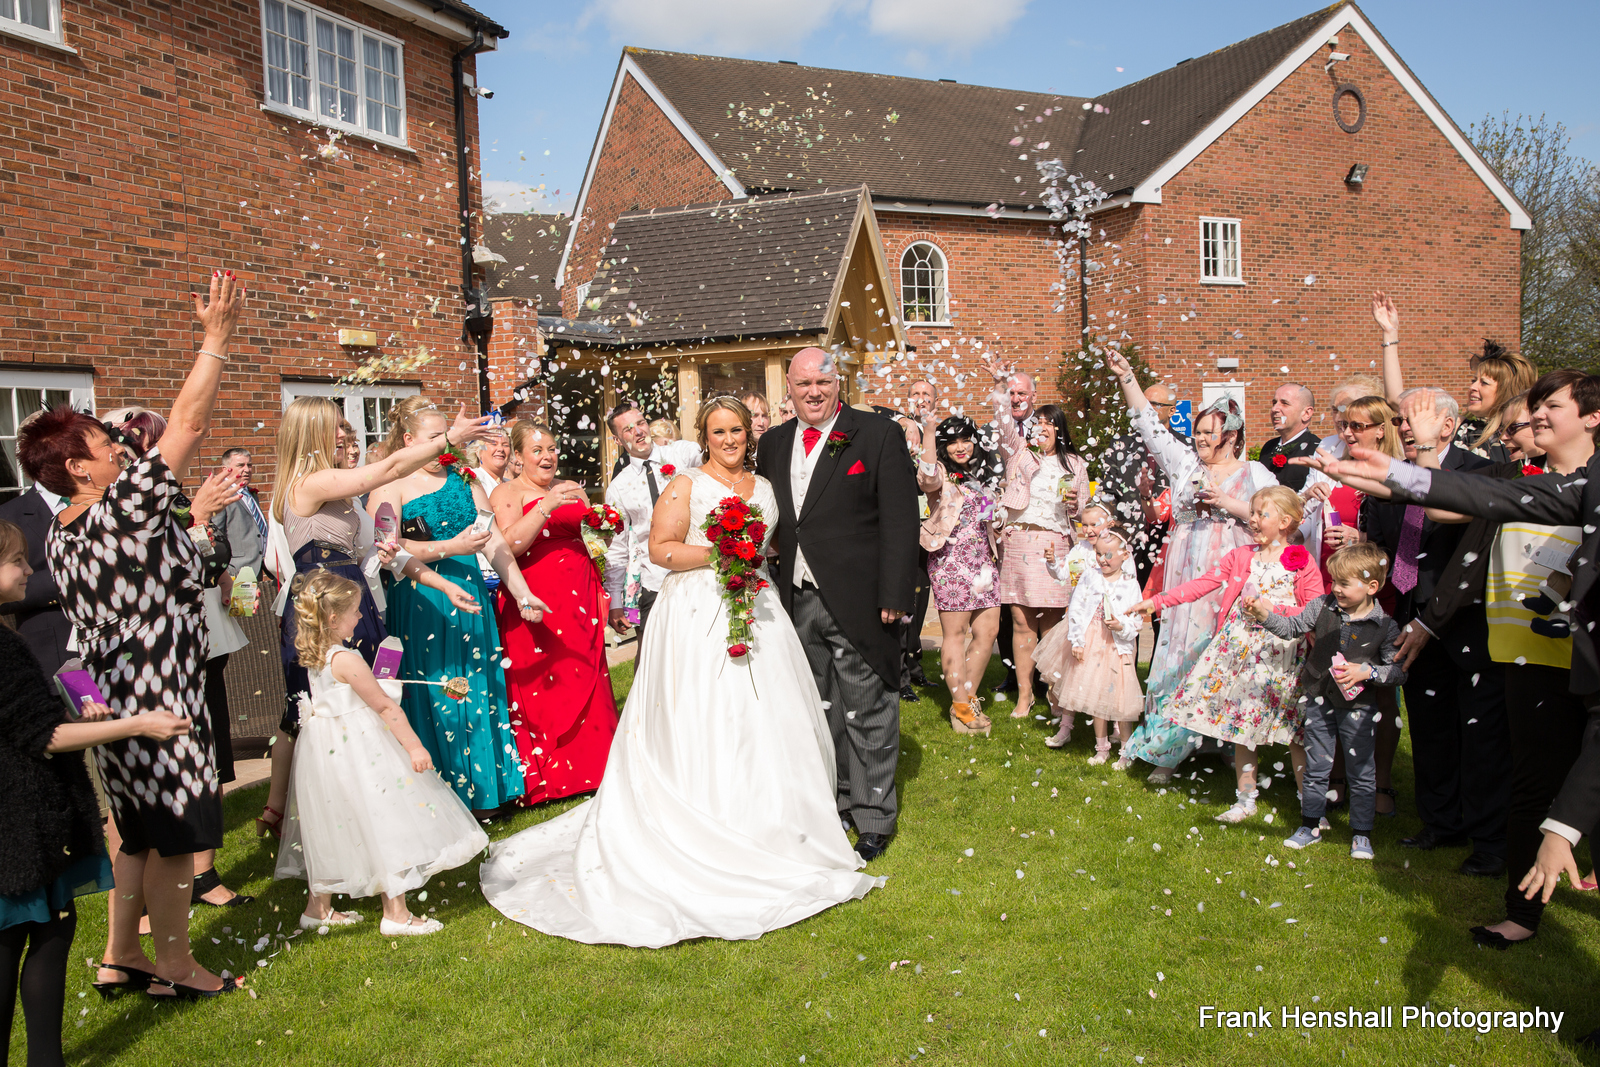 BEST WESTERN Manor House Hotel, Staffordshire Wedding Venue - Competition